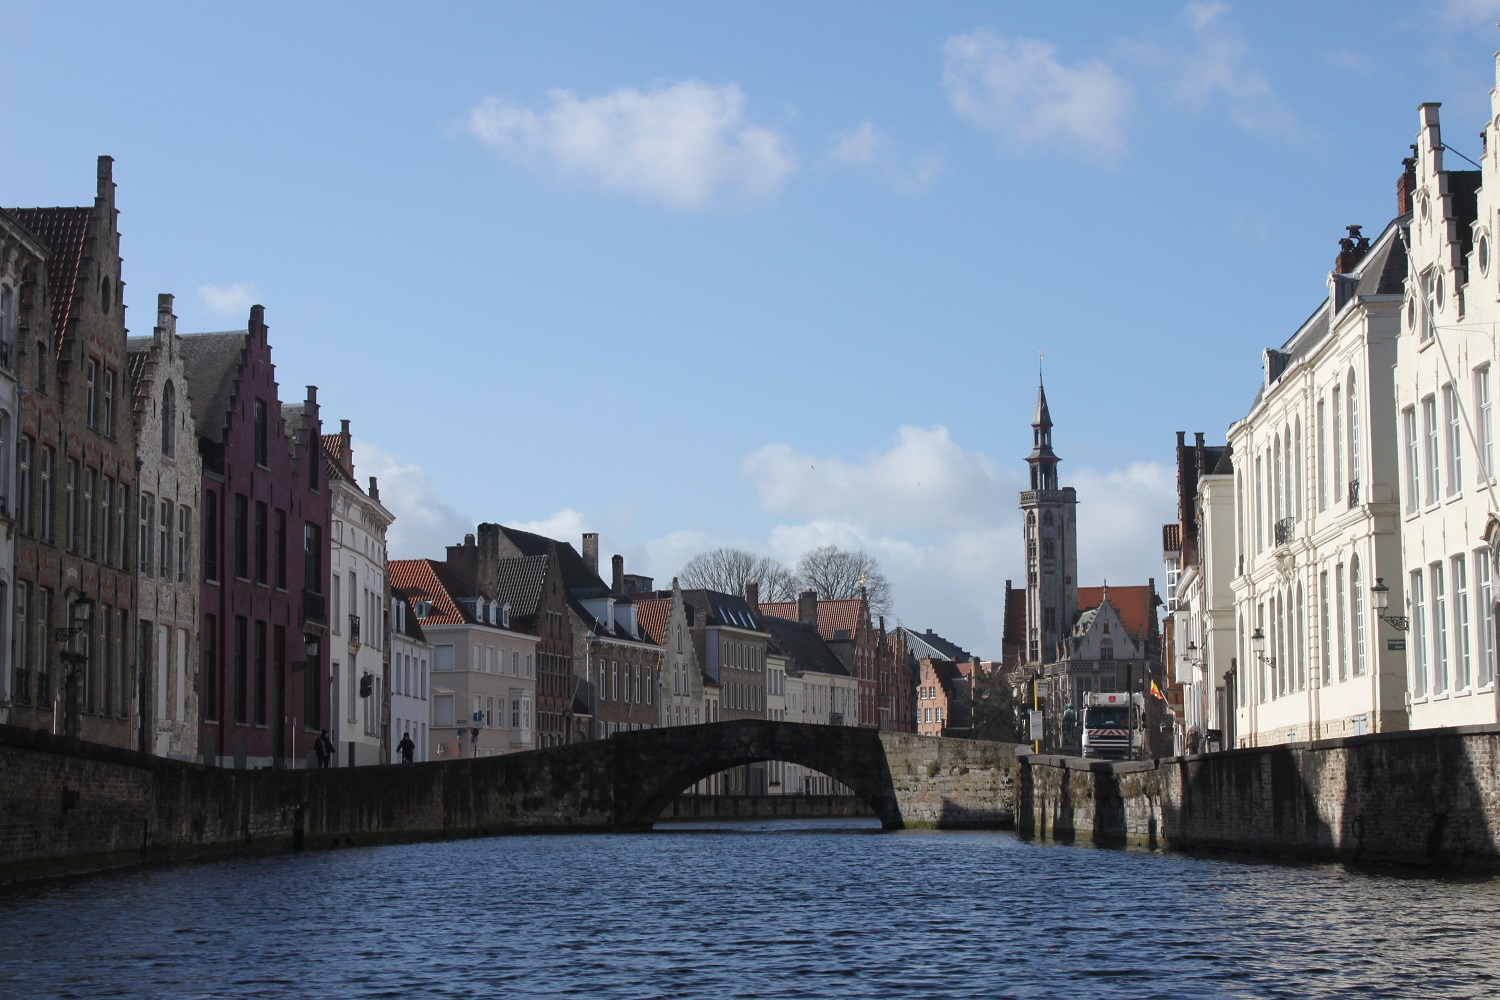 Canal View of Bruges, Belgium